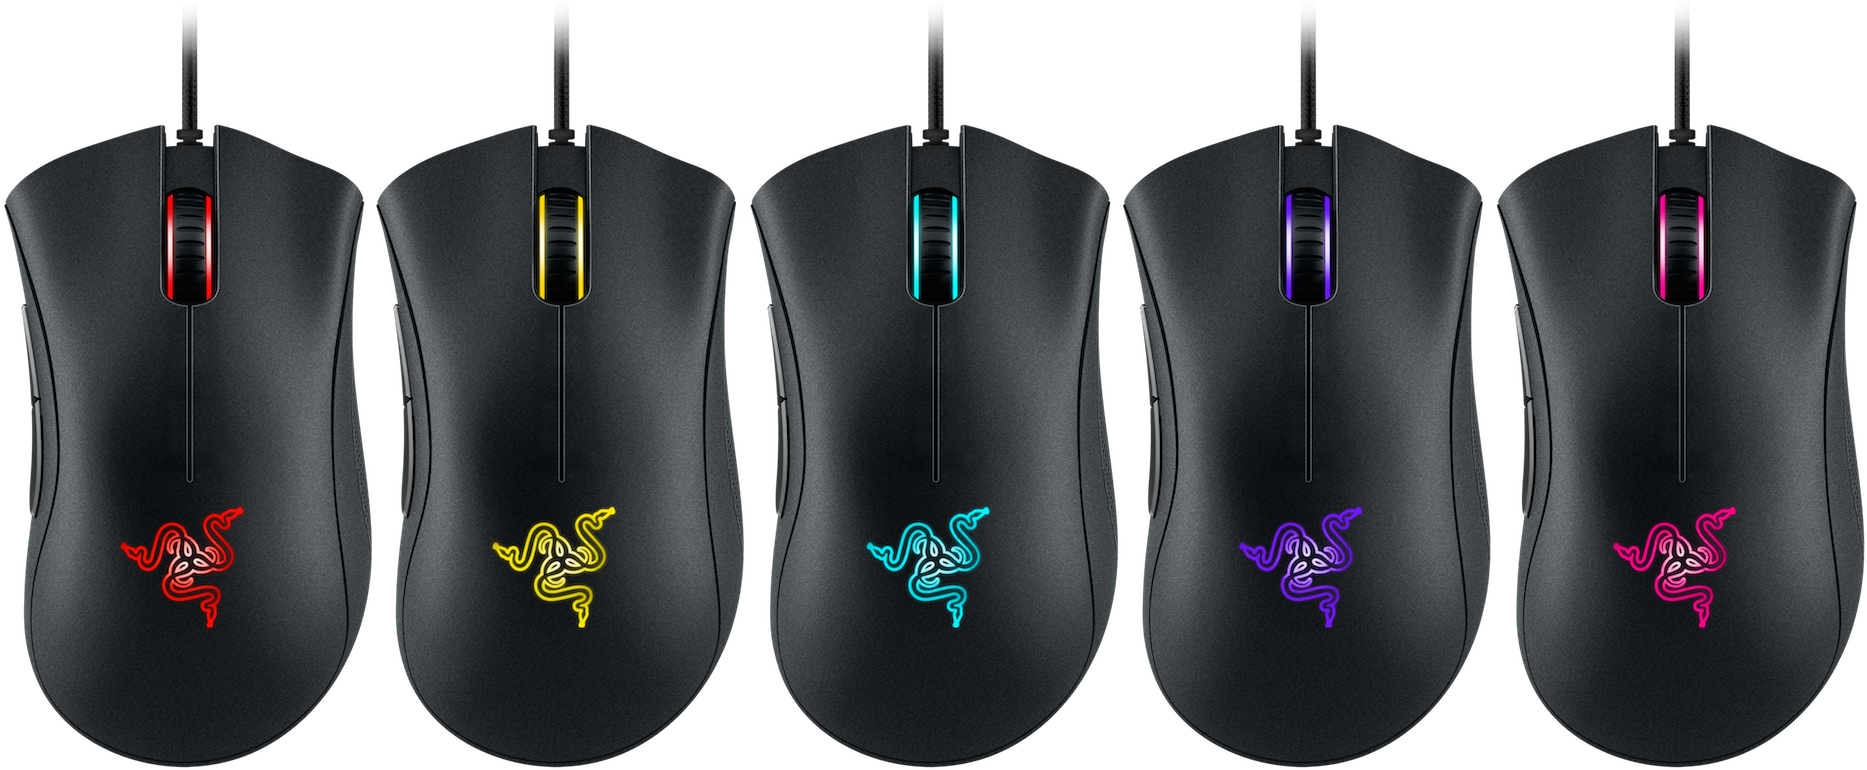 Download Razer Has Announced The Arrival Of The Deathadder Chroma